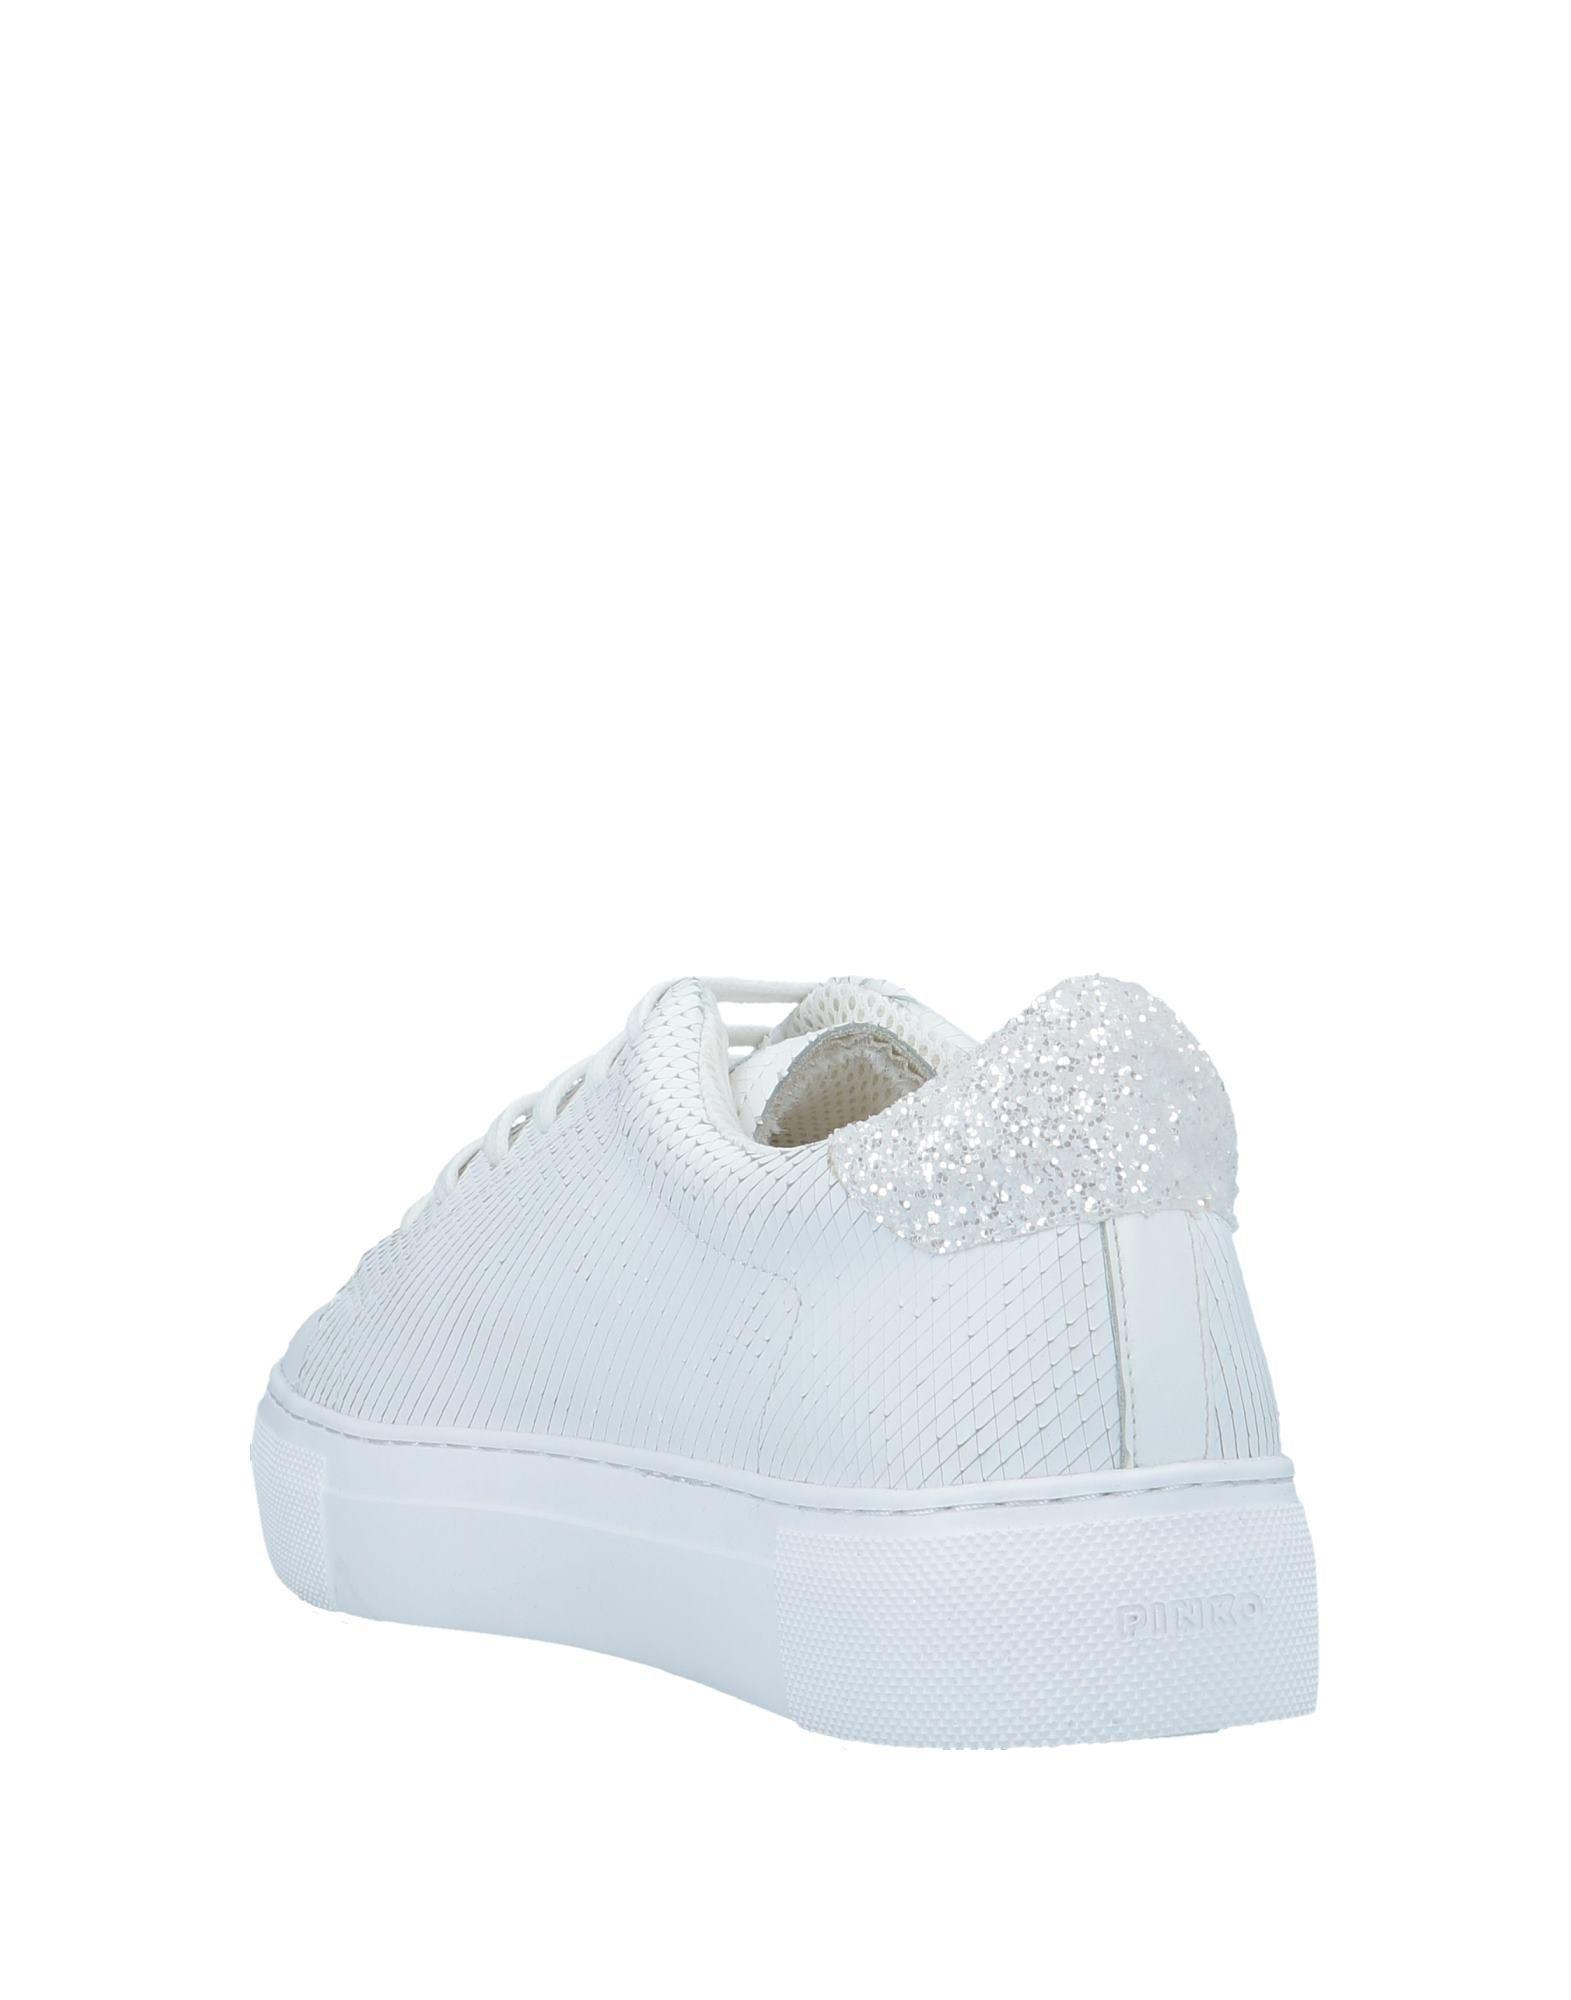 da106ebf2b1d Lyst - Pinko Low-tops   Sneakers in White